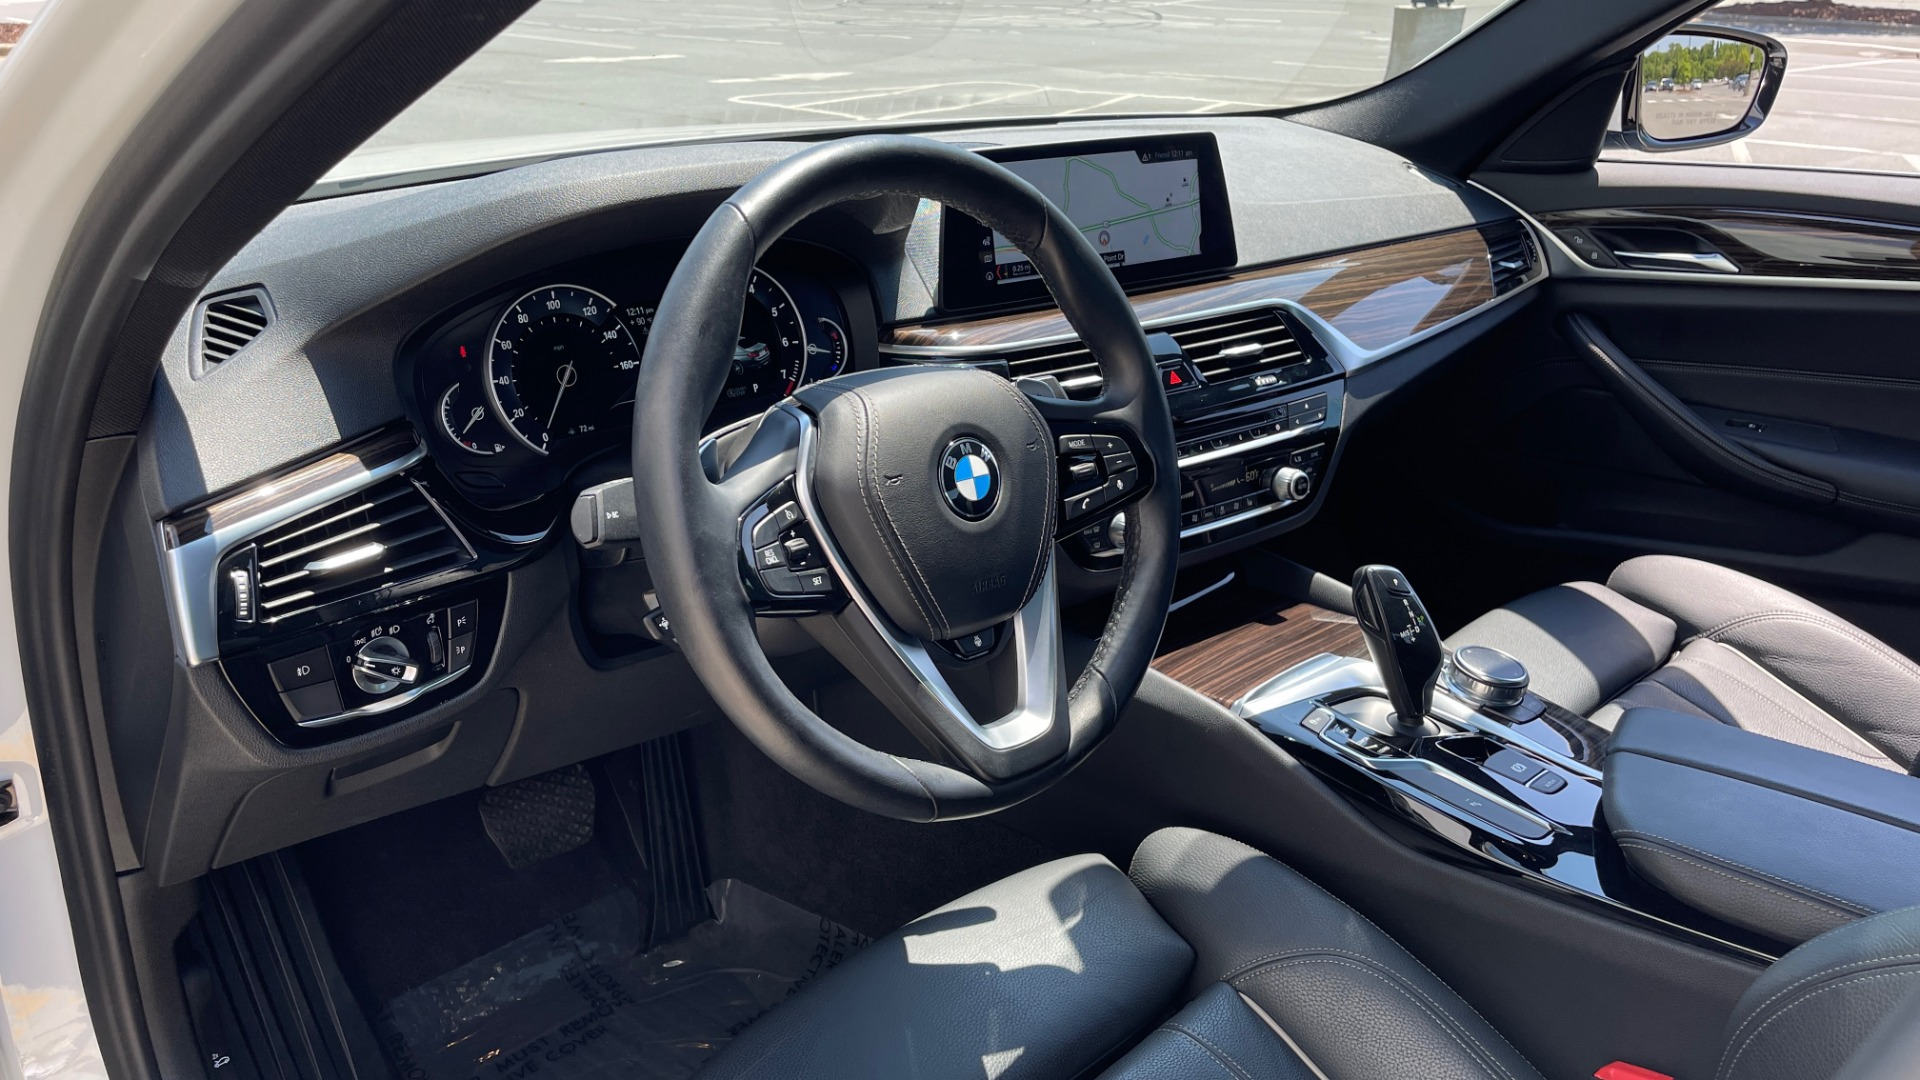 Used 2018 BMW 5 SERIES 540IXDRIVE PREMIUM / PARK ASSIST / KEYLESS ENTRY / SUNROOF / REARVIEW for sale $42,995 at Formula Imports in Charlotte NC 28227 71